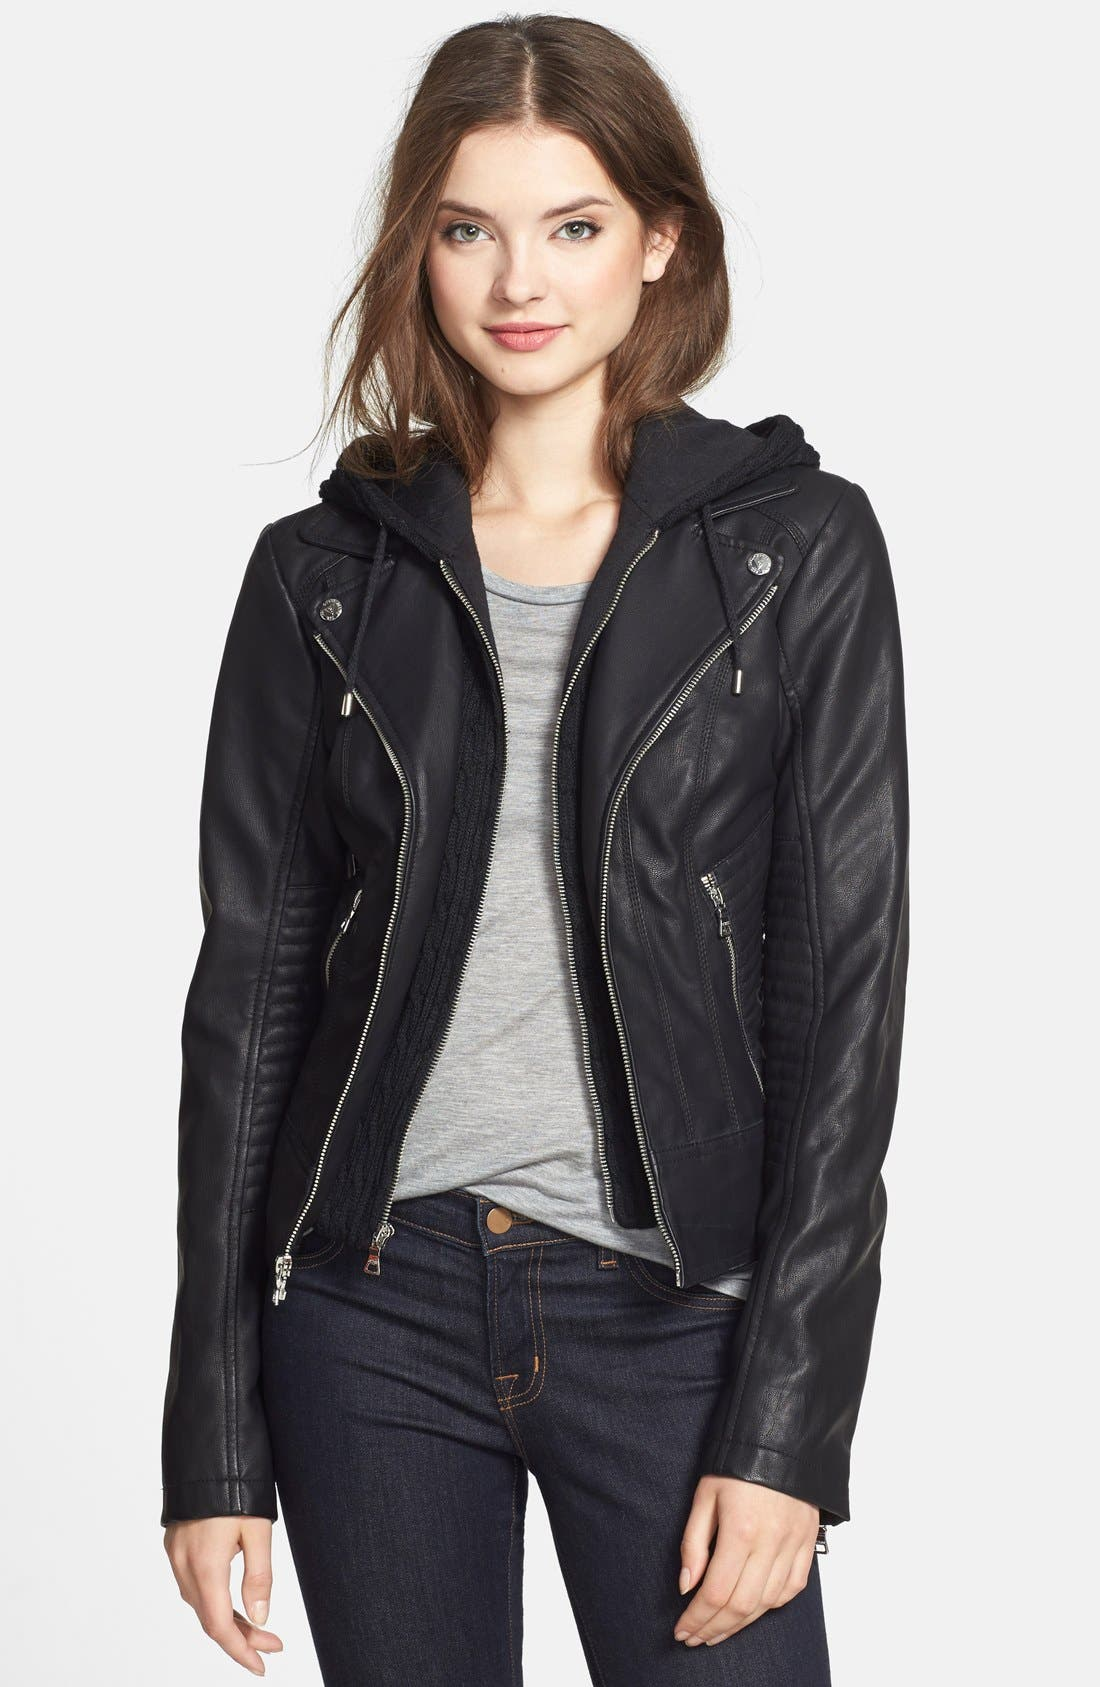 Alternate Image 1 Selected - GUESS Faux Leather Moto Jacket with Cable Knit Hooded Bib Inset (Online Only)